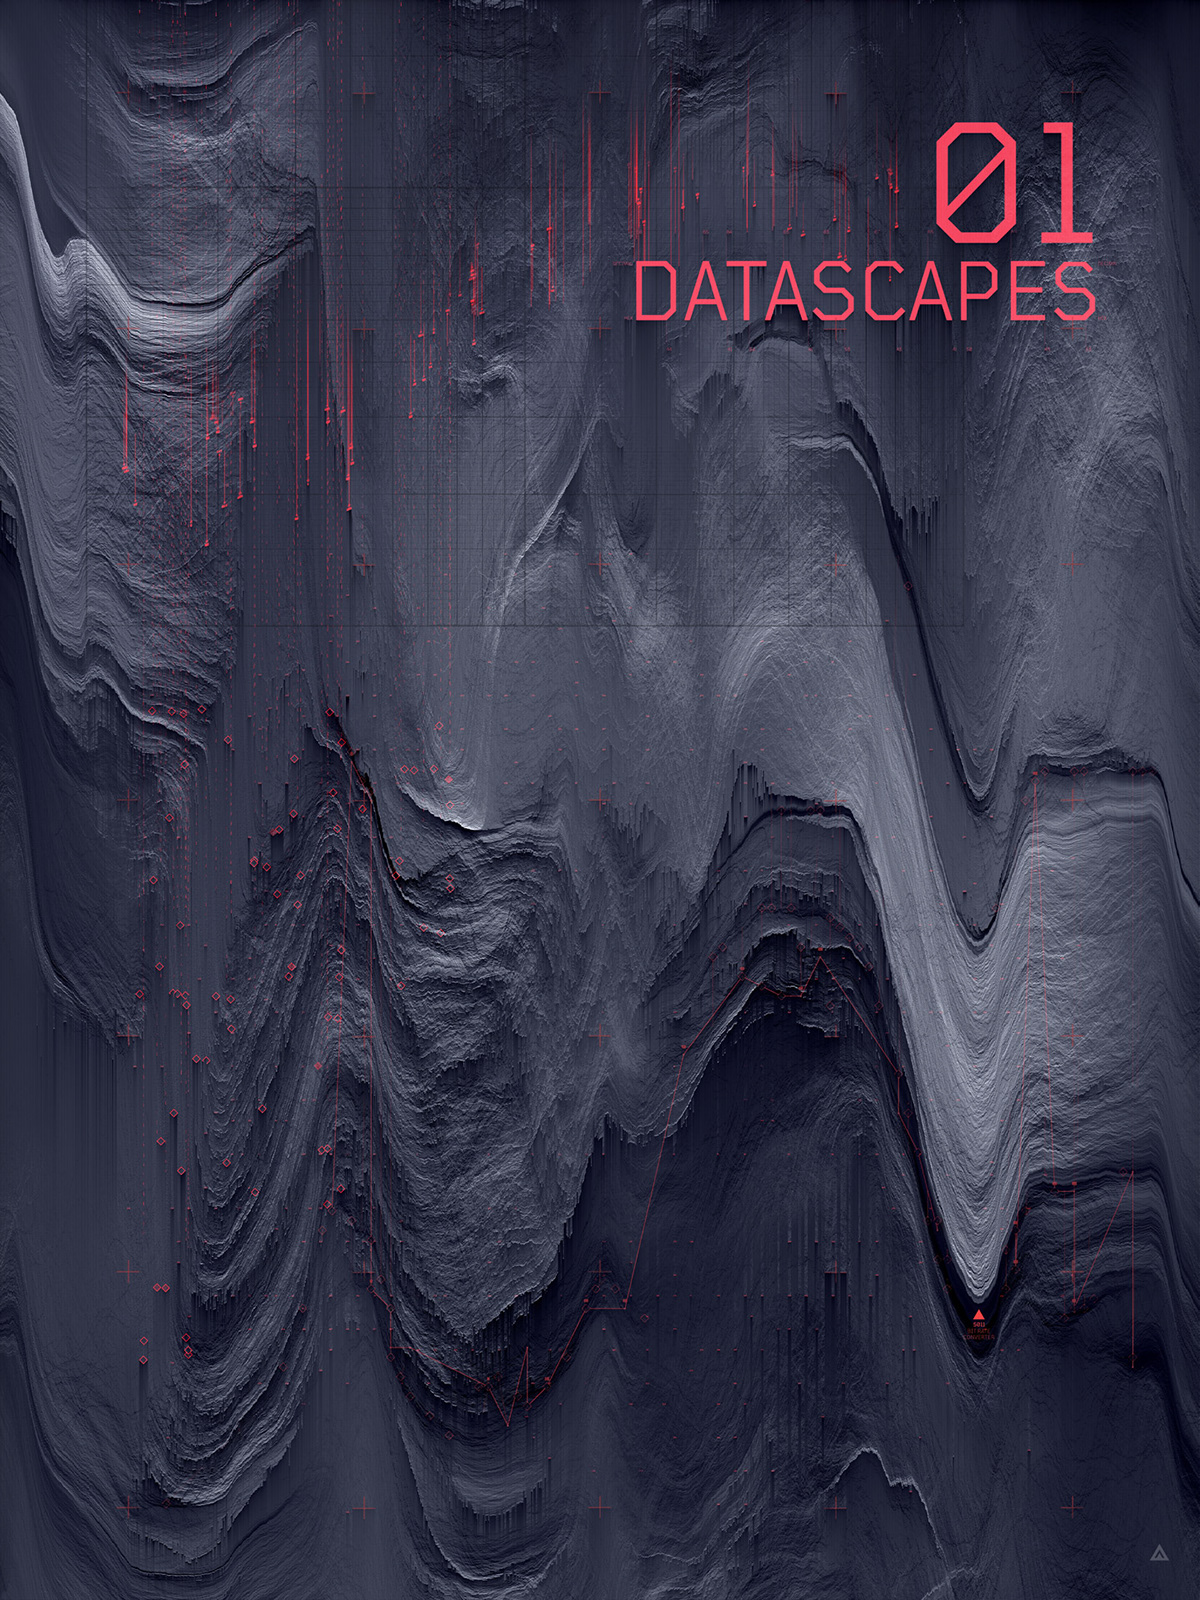 datascapes01.jpg